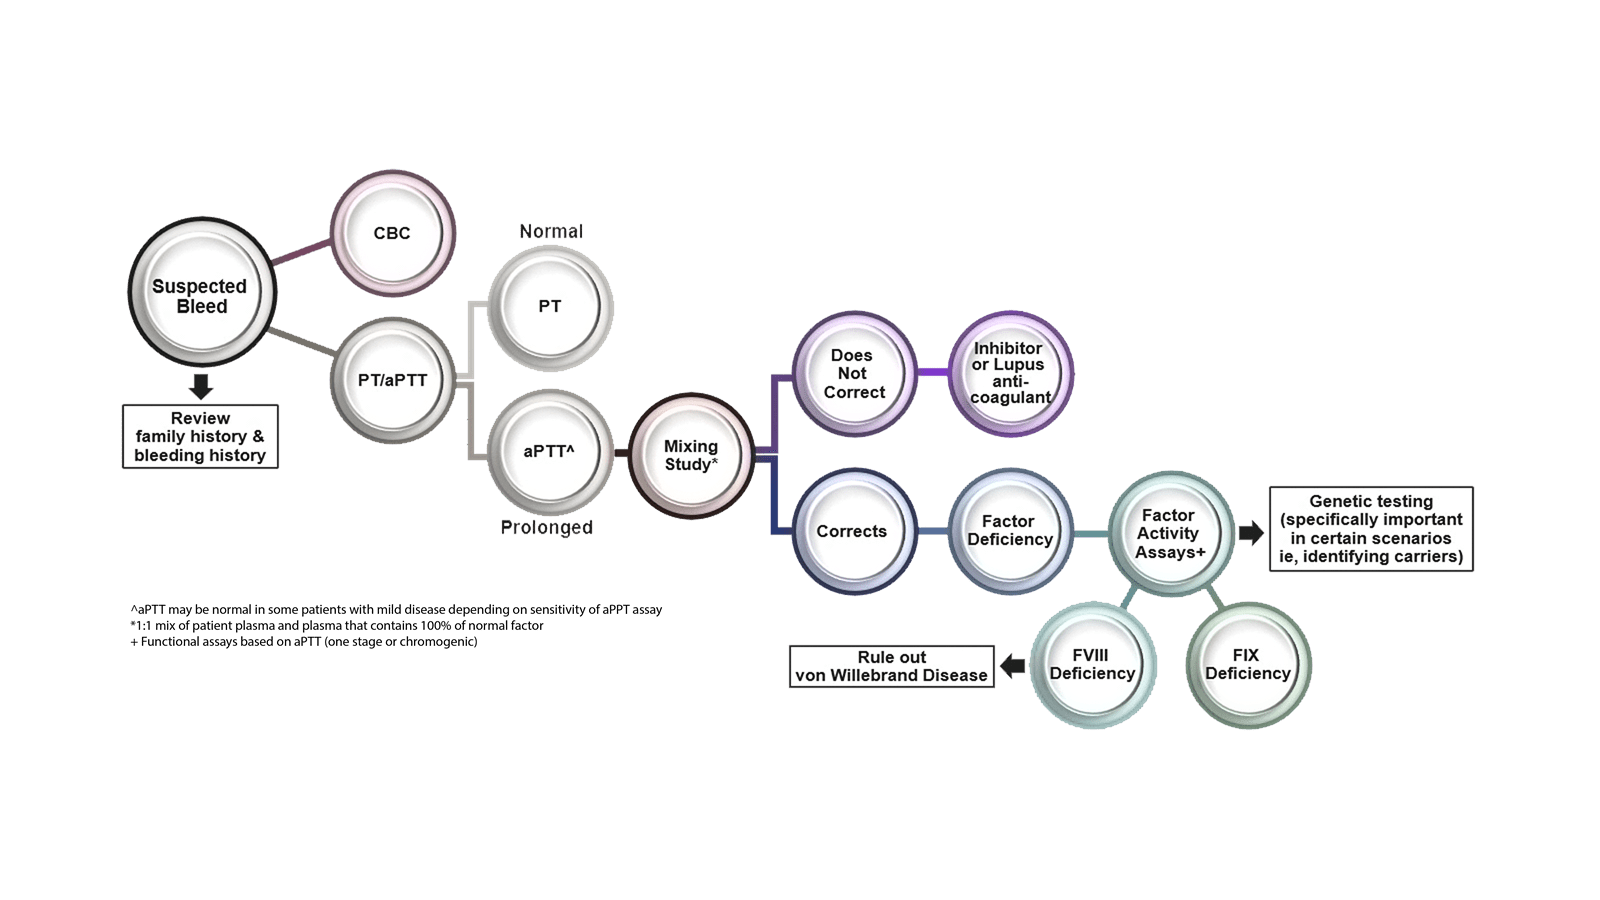 Image of diagnosis chart for FVIII deficiency or FIX deficiency